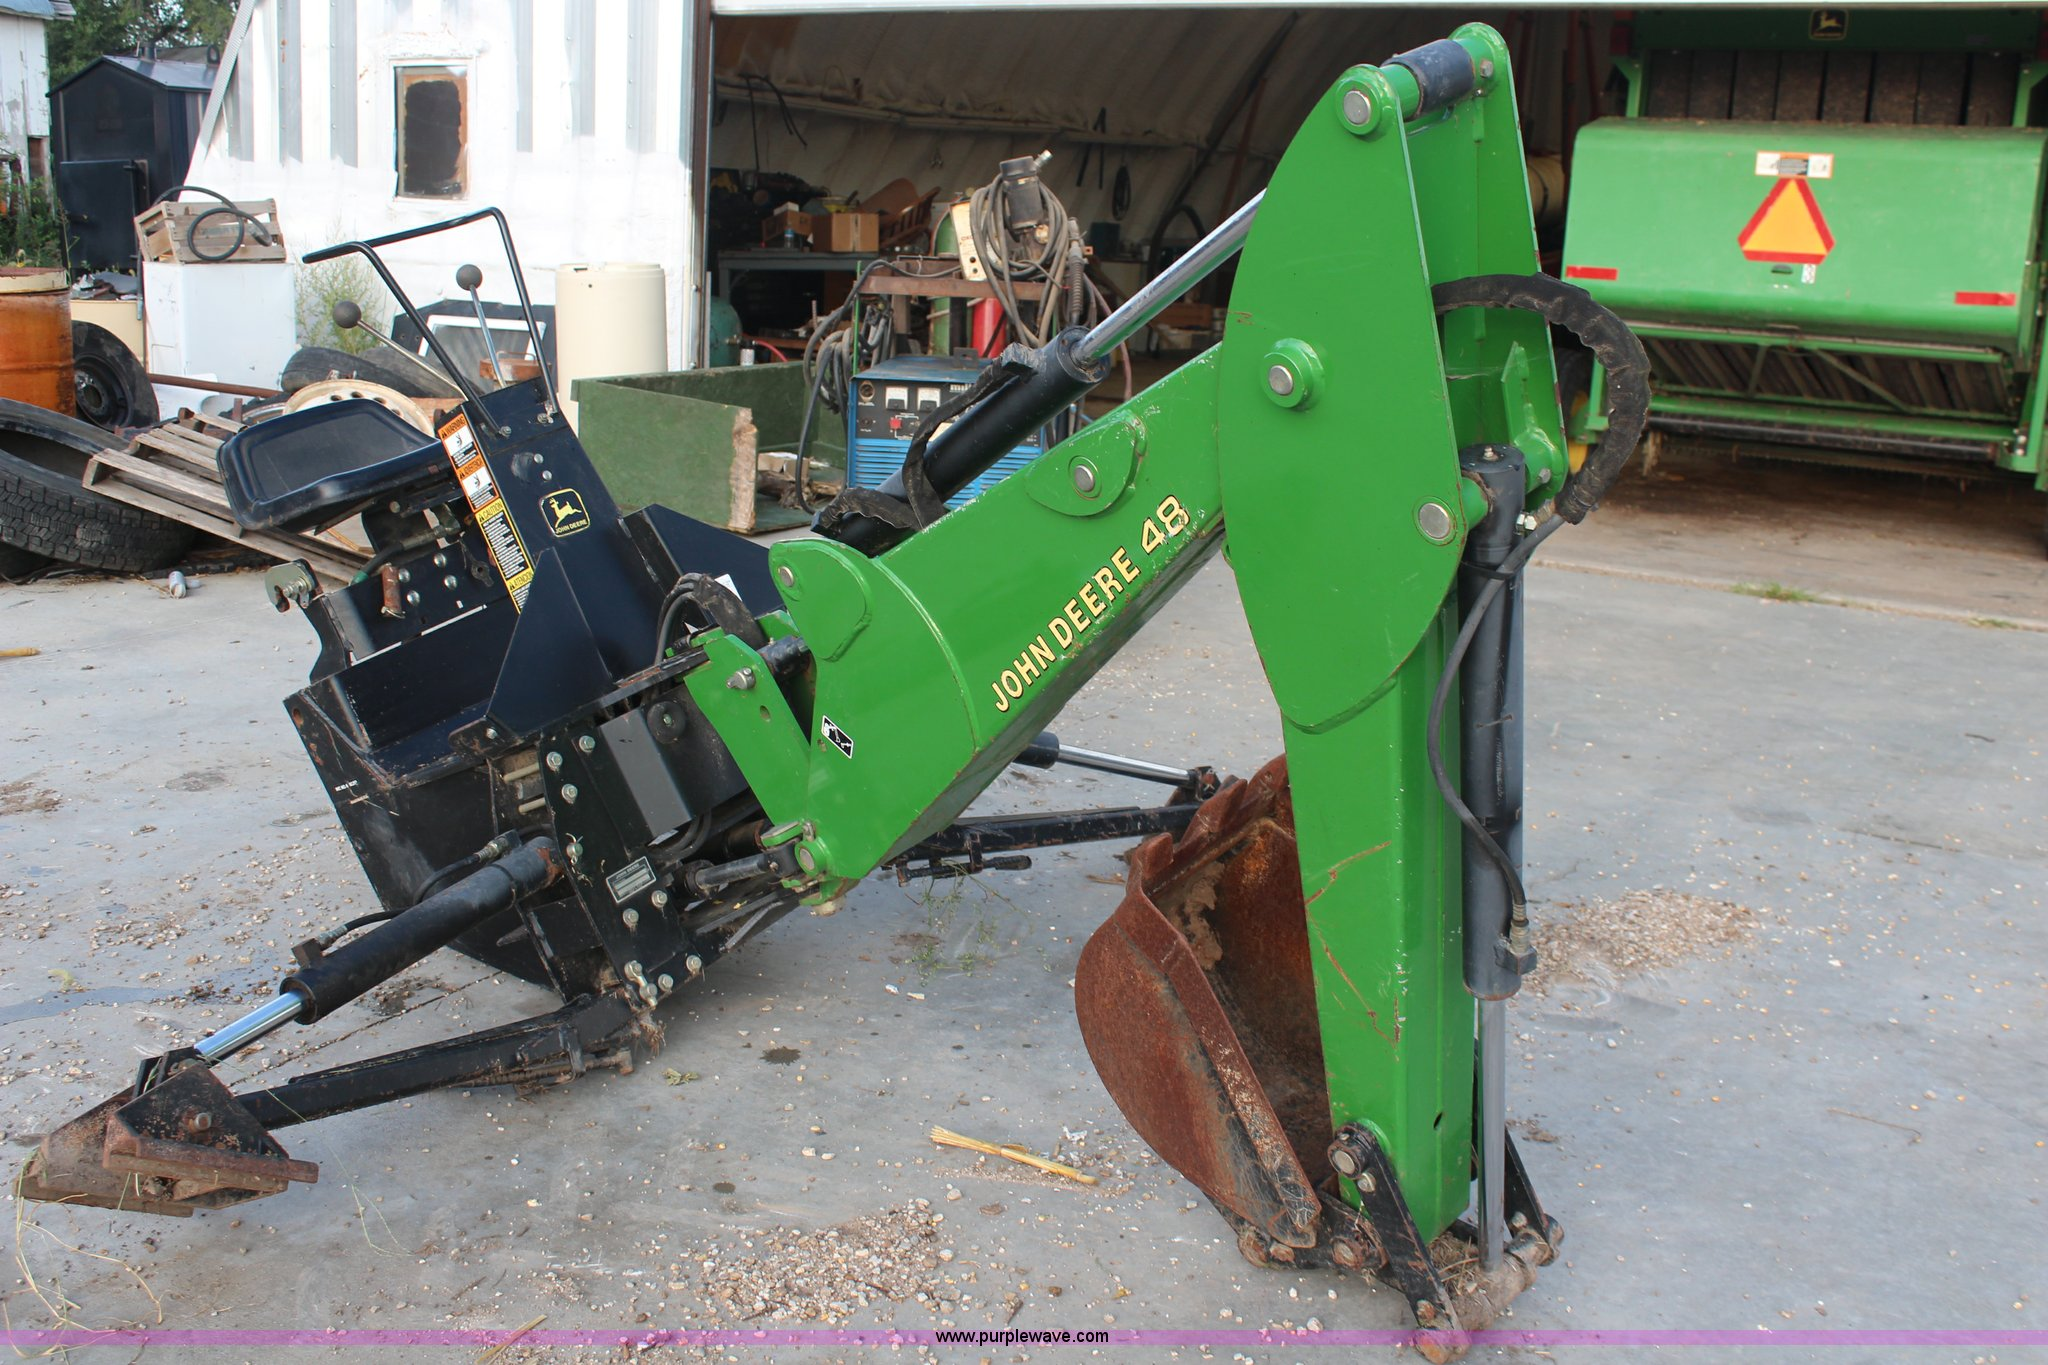 John Deere Backhoe Attachment >> John Deere 48 Backhoe Attachment Item Av9462 Sold Octob